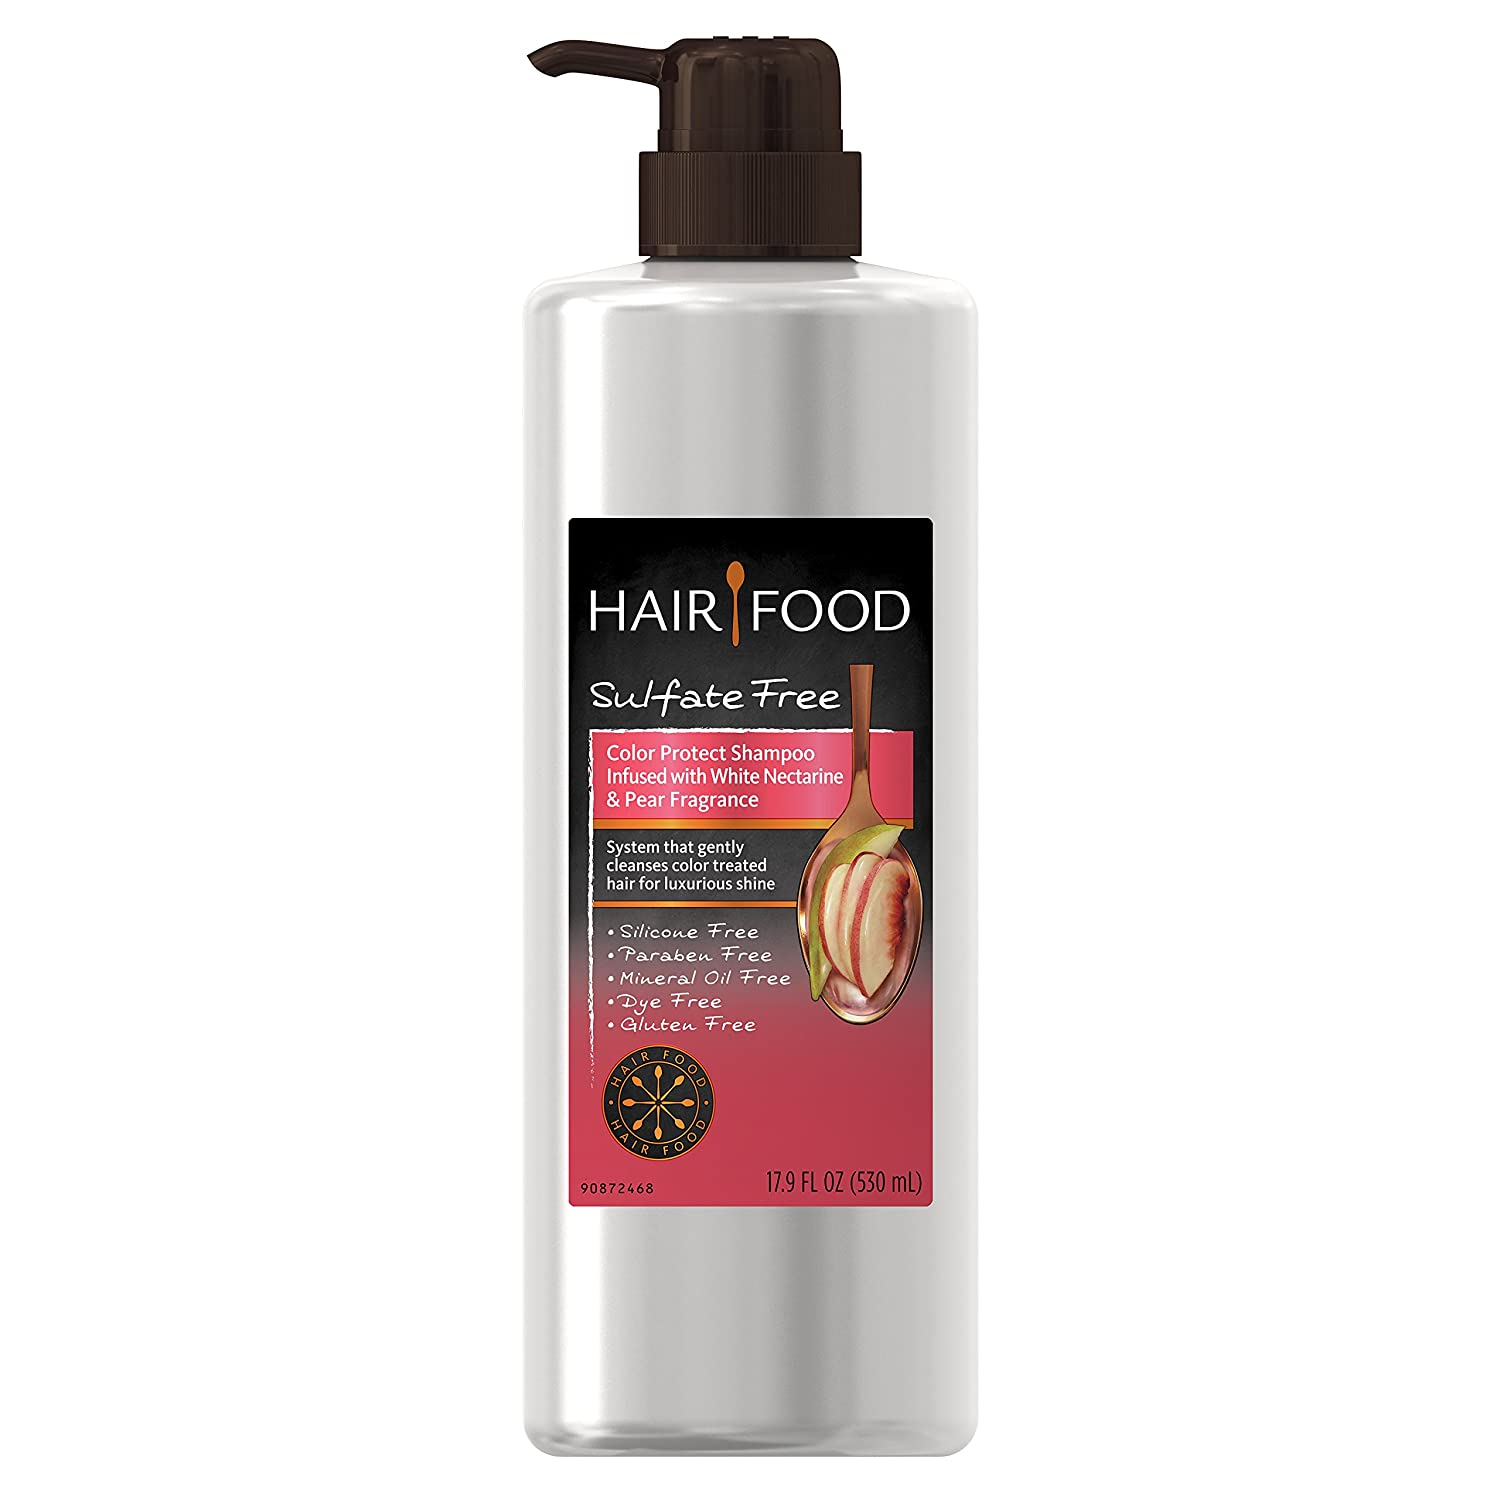 Hair Food Sulfate Free Color Protect Shampoo with White Nectarine & Pear Fragrance, 17.9 Fluid Ounce (Pack of 9)